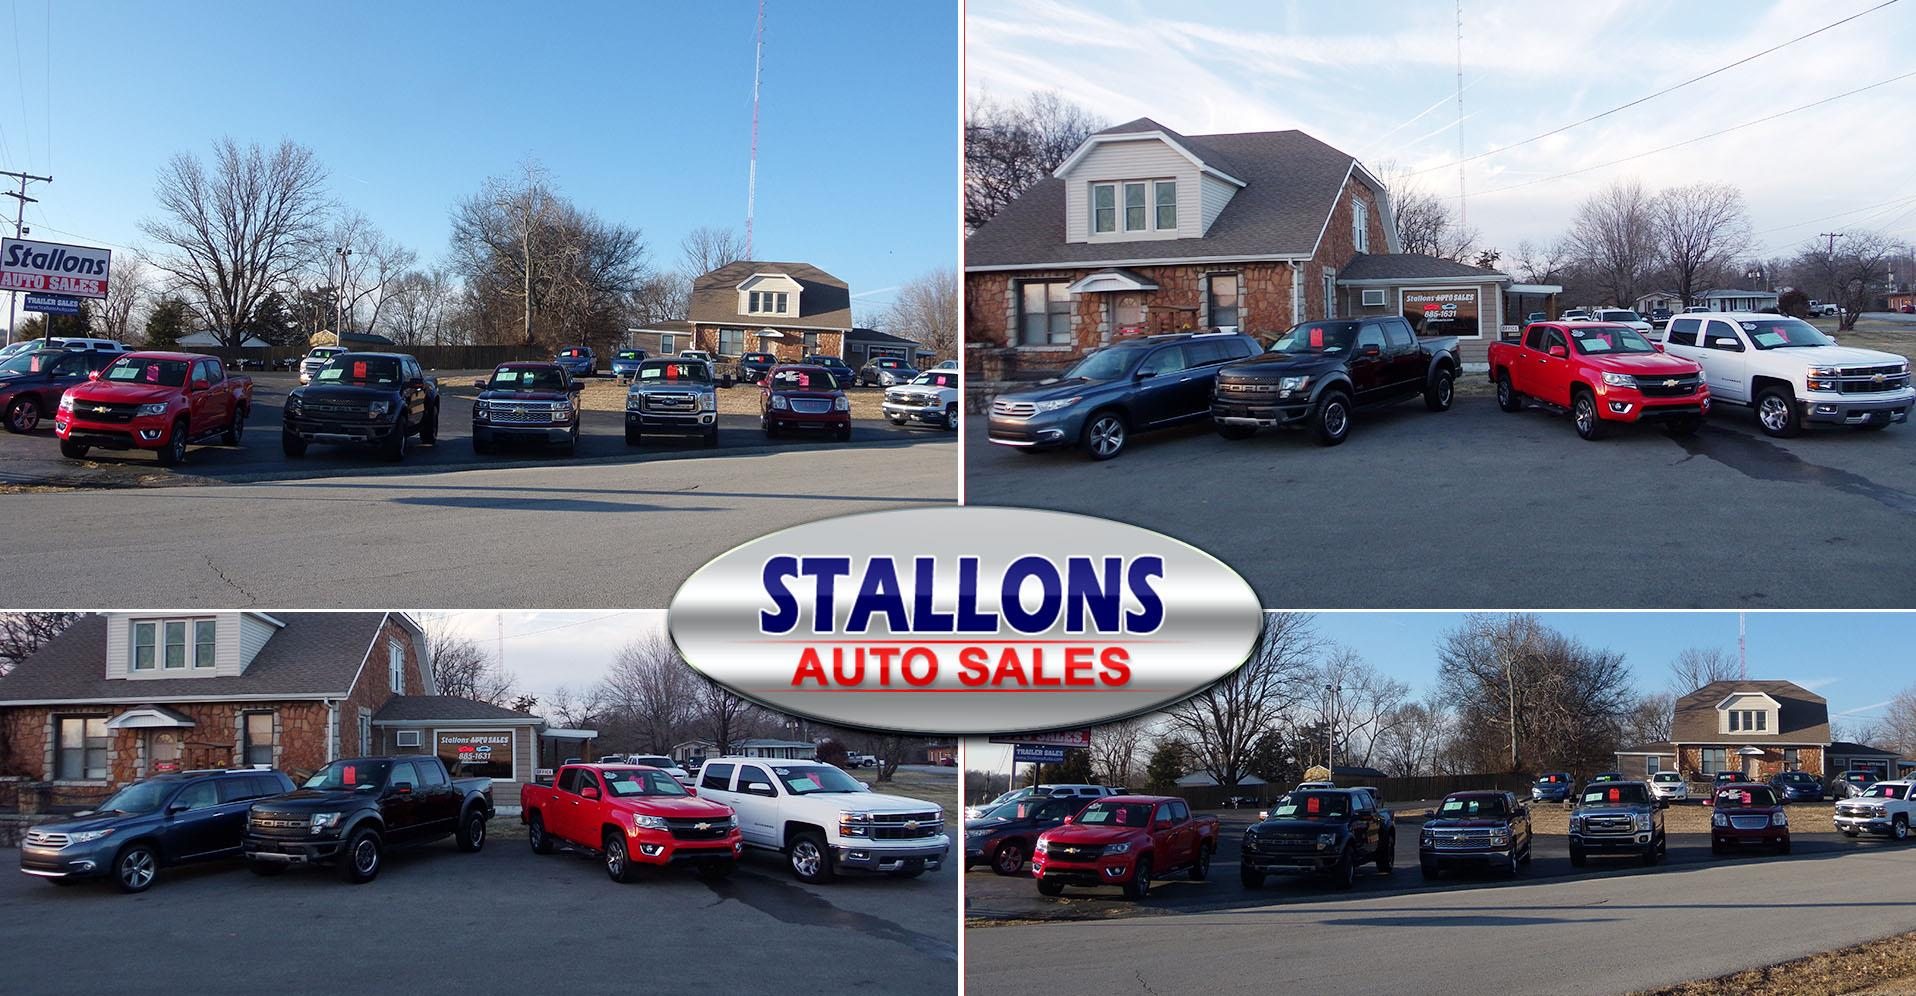 Toyota Of Hopkinsville >> Stallons Auto Sales | Used Vehicles in Hopkinsville, KY